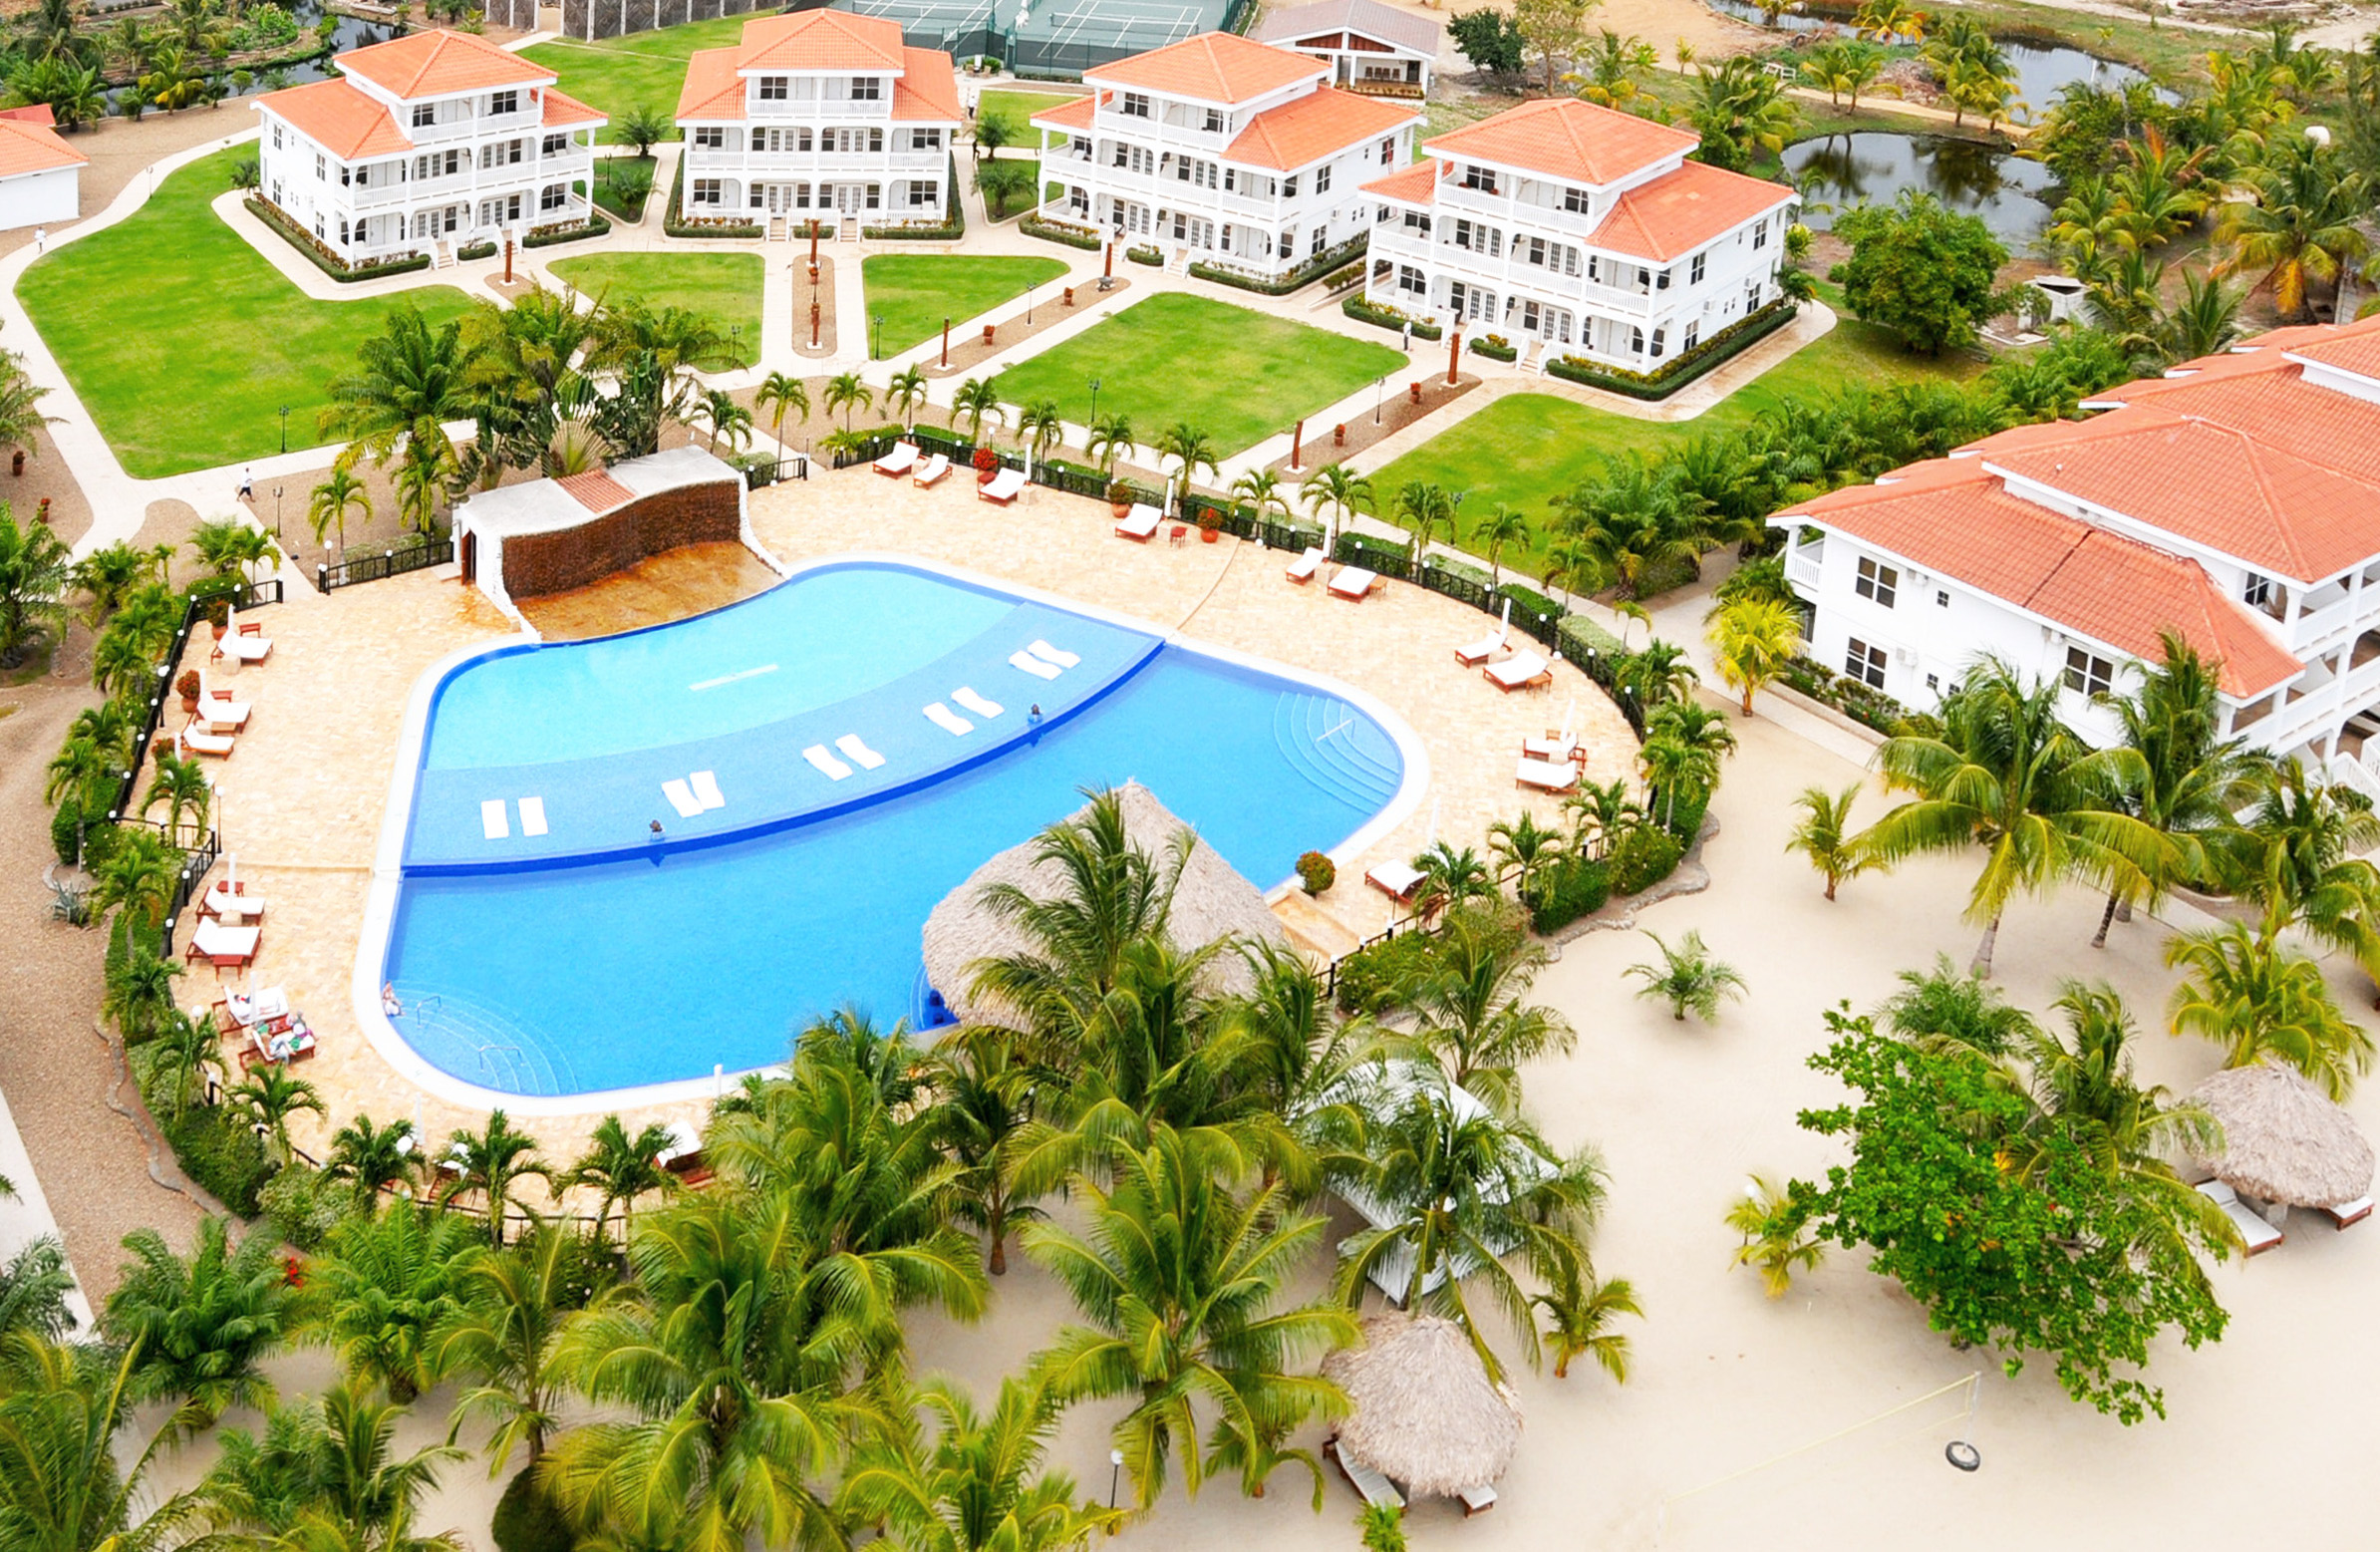 Pool and Rooms Aerial ©ThePlacencia.jpg